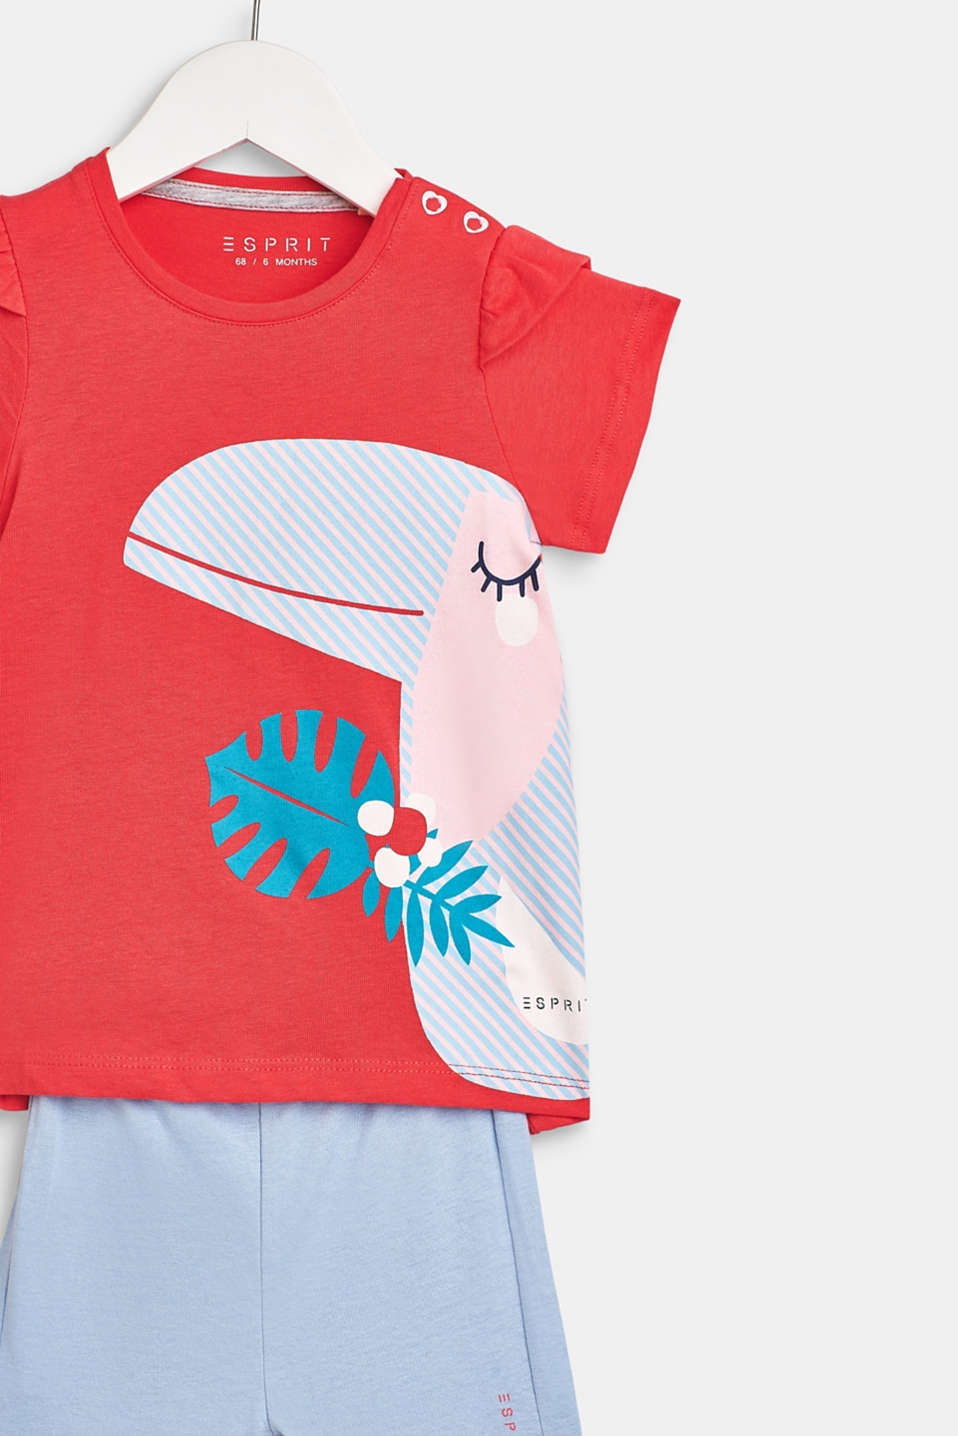 T-shirt and shorts set, 100% cotton, LCWATERMELON, detail image number 2